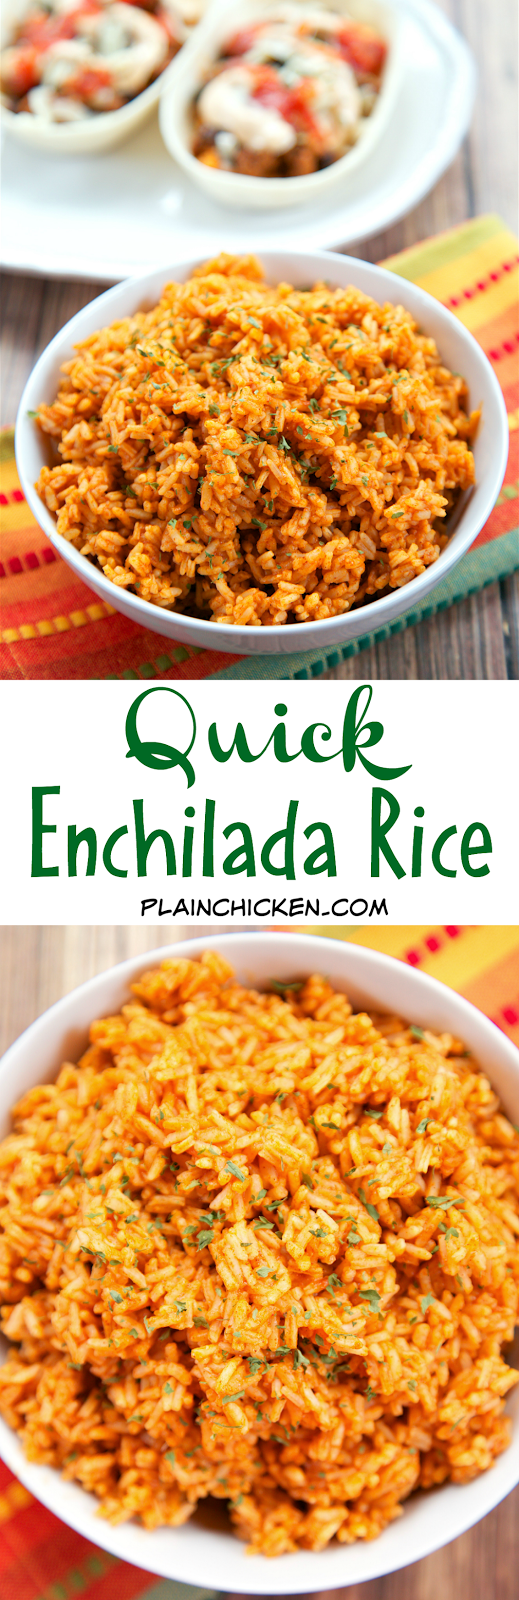 Quick Enchilada Rice - only 2 ingredients! Ready in 5 minutes! Tastes just like the Mexican restaurant. We make this all the time!